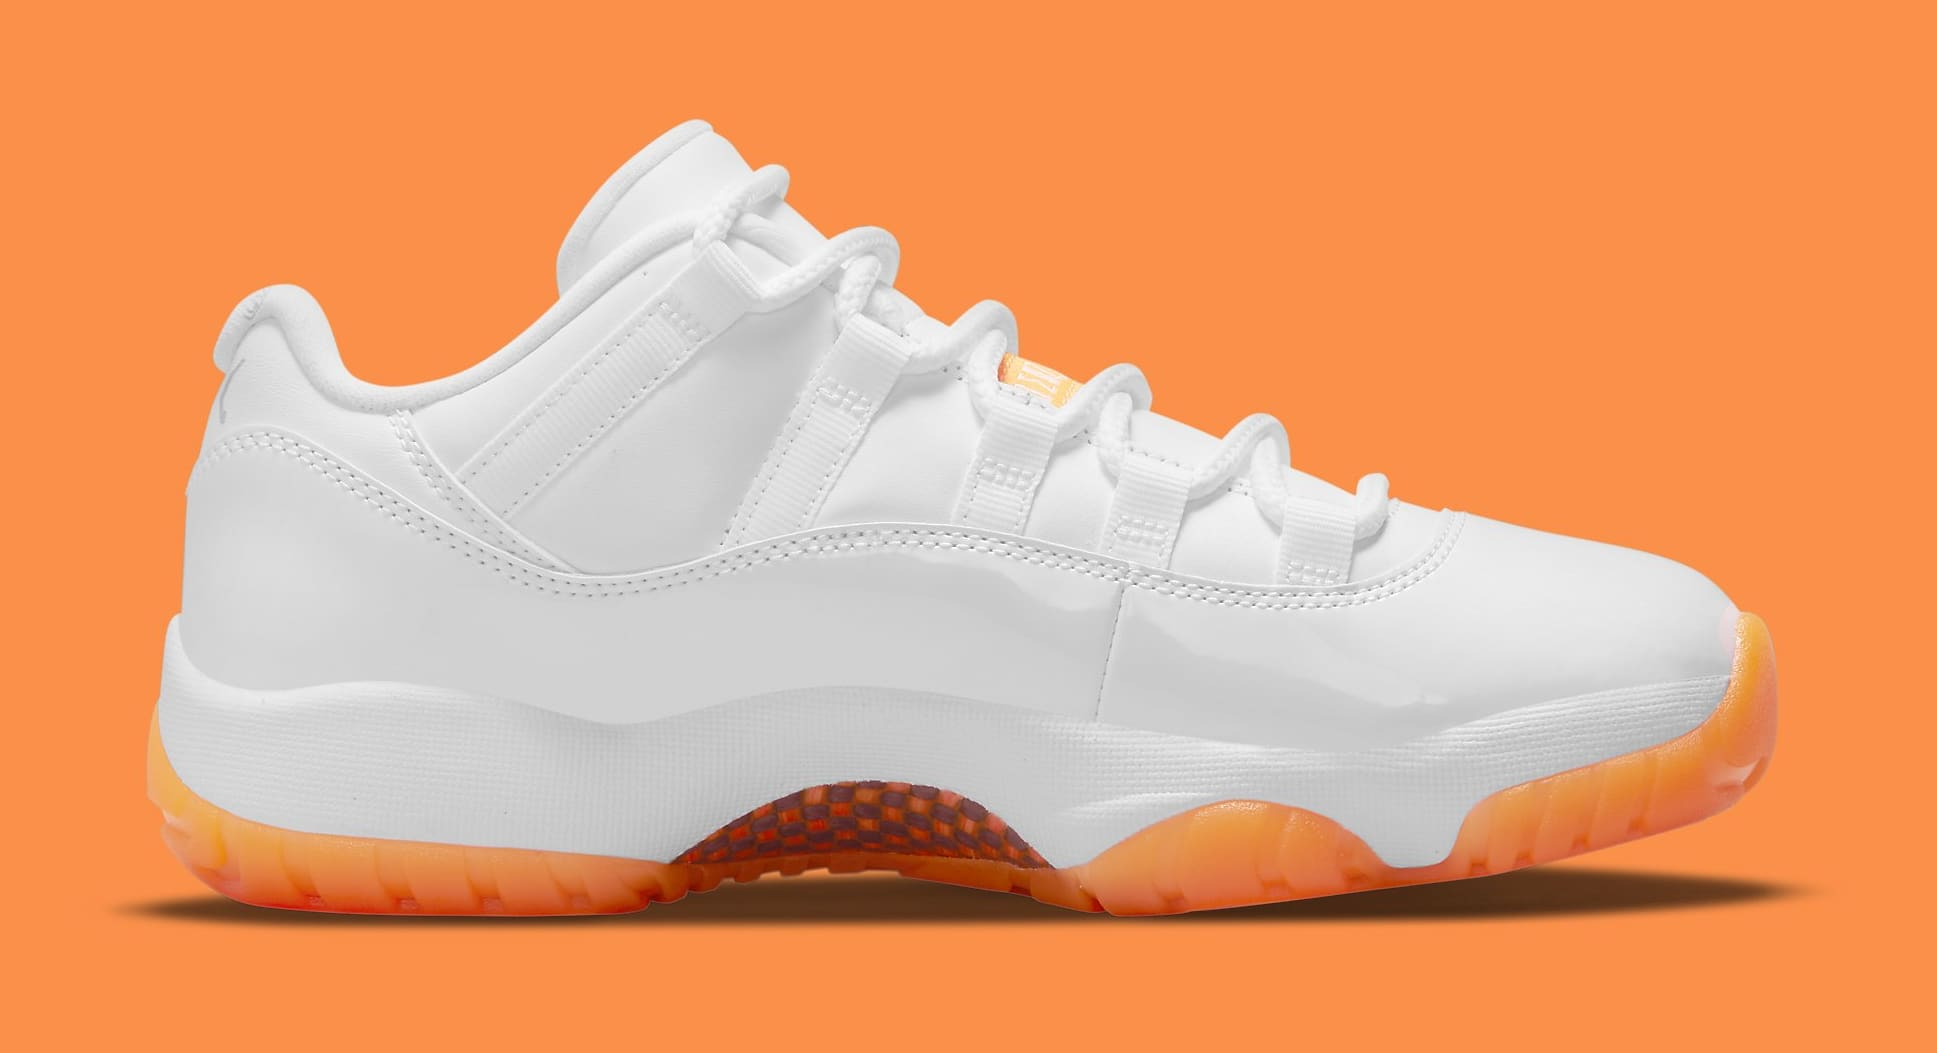 Air Jordan 11 Retro Low Women's 'Citrus' AH7860-139 Medial